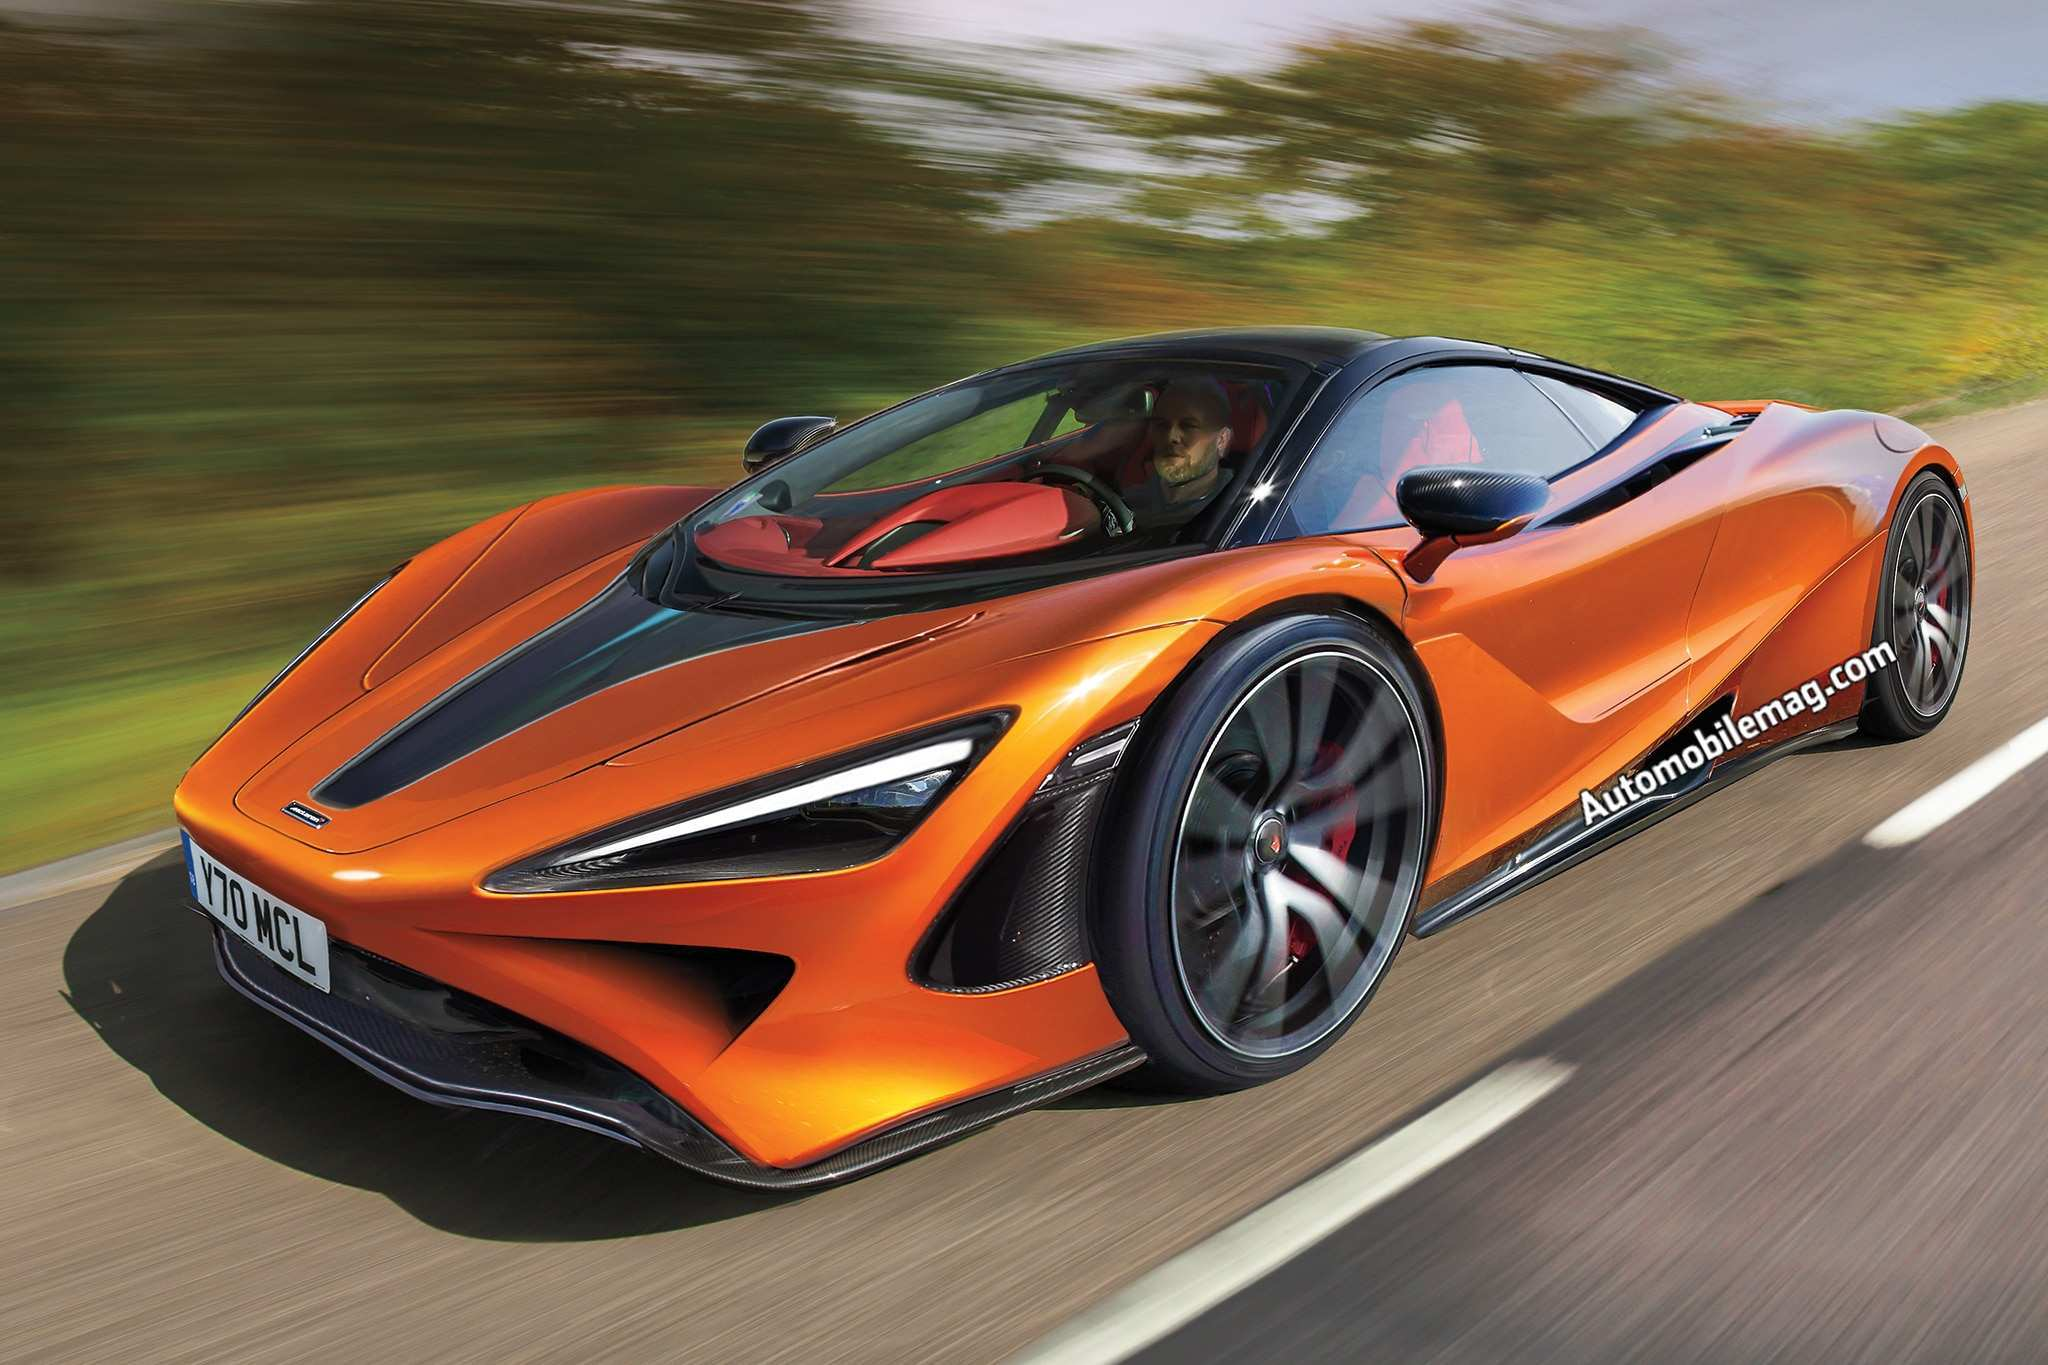 17 New 2020 Mclaren Bp23 Rumors